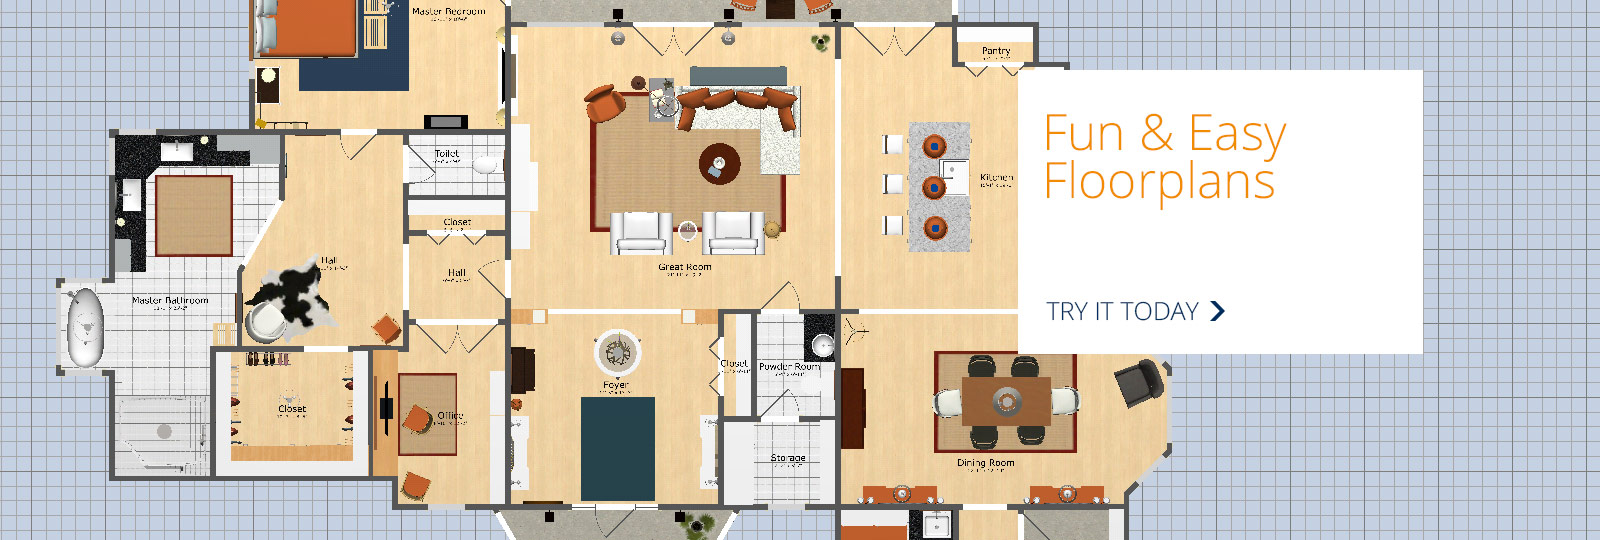 fun and easy floorplans - Easy Home Design